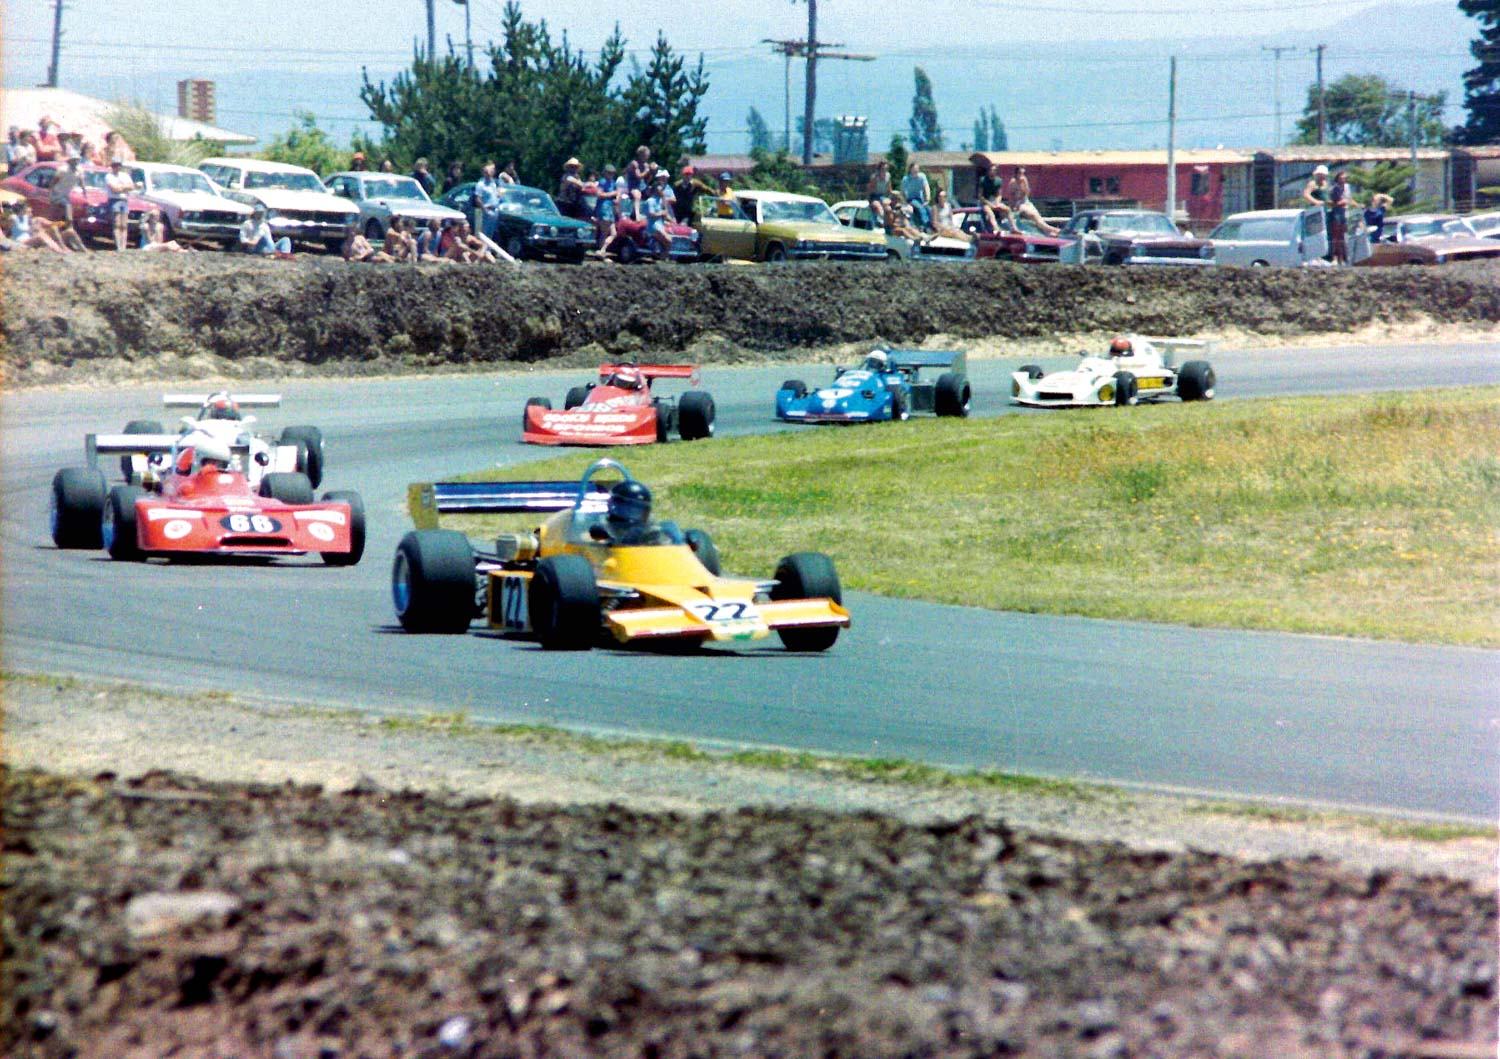 Ross Stone (of Stone Brothers Racing V8 Supercars fame) leads a group of Formula Atlantic cars in the Cuda JR3 he and brother Jim built